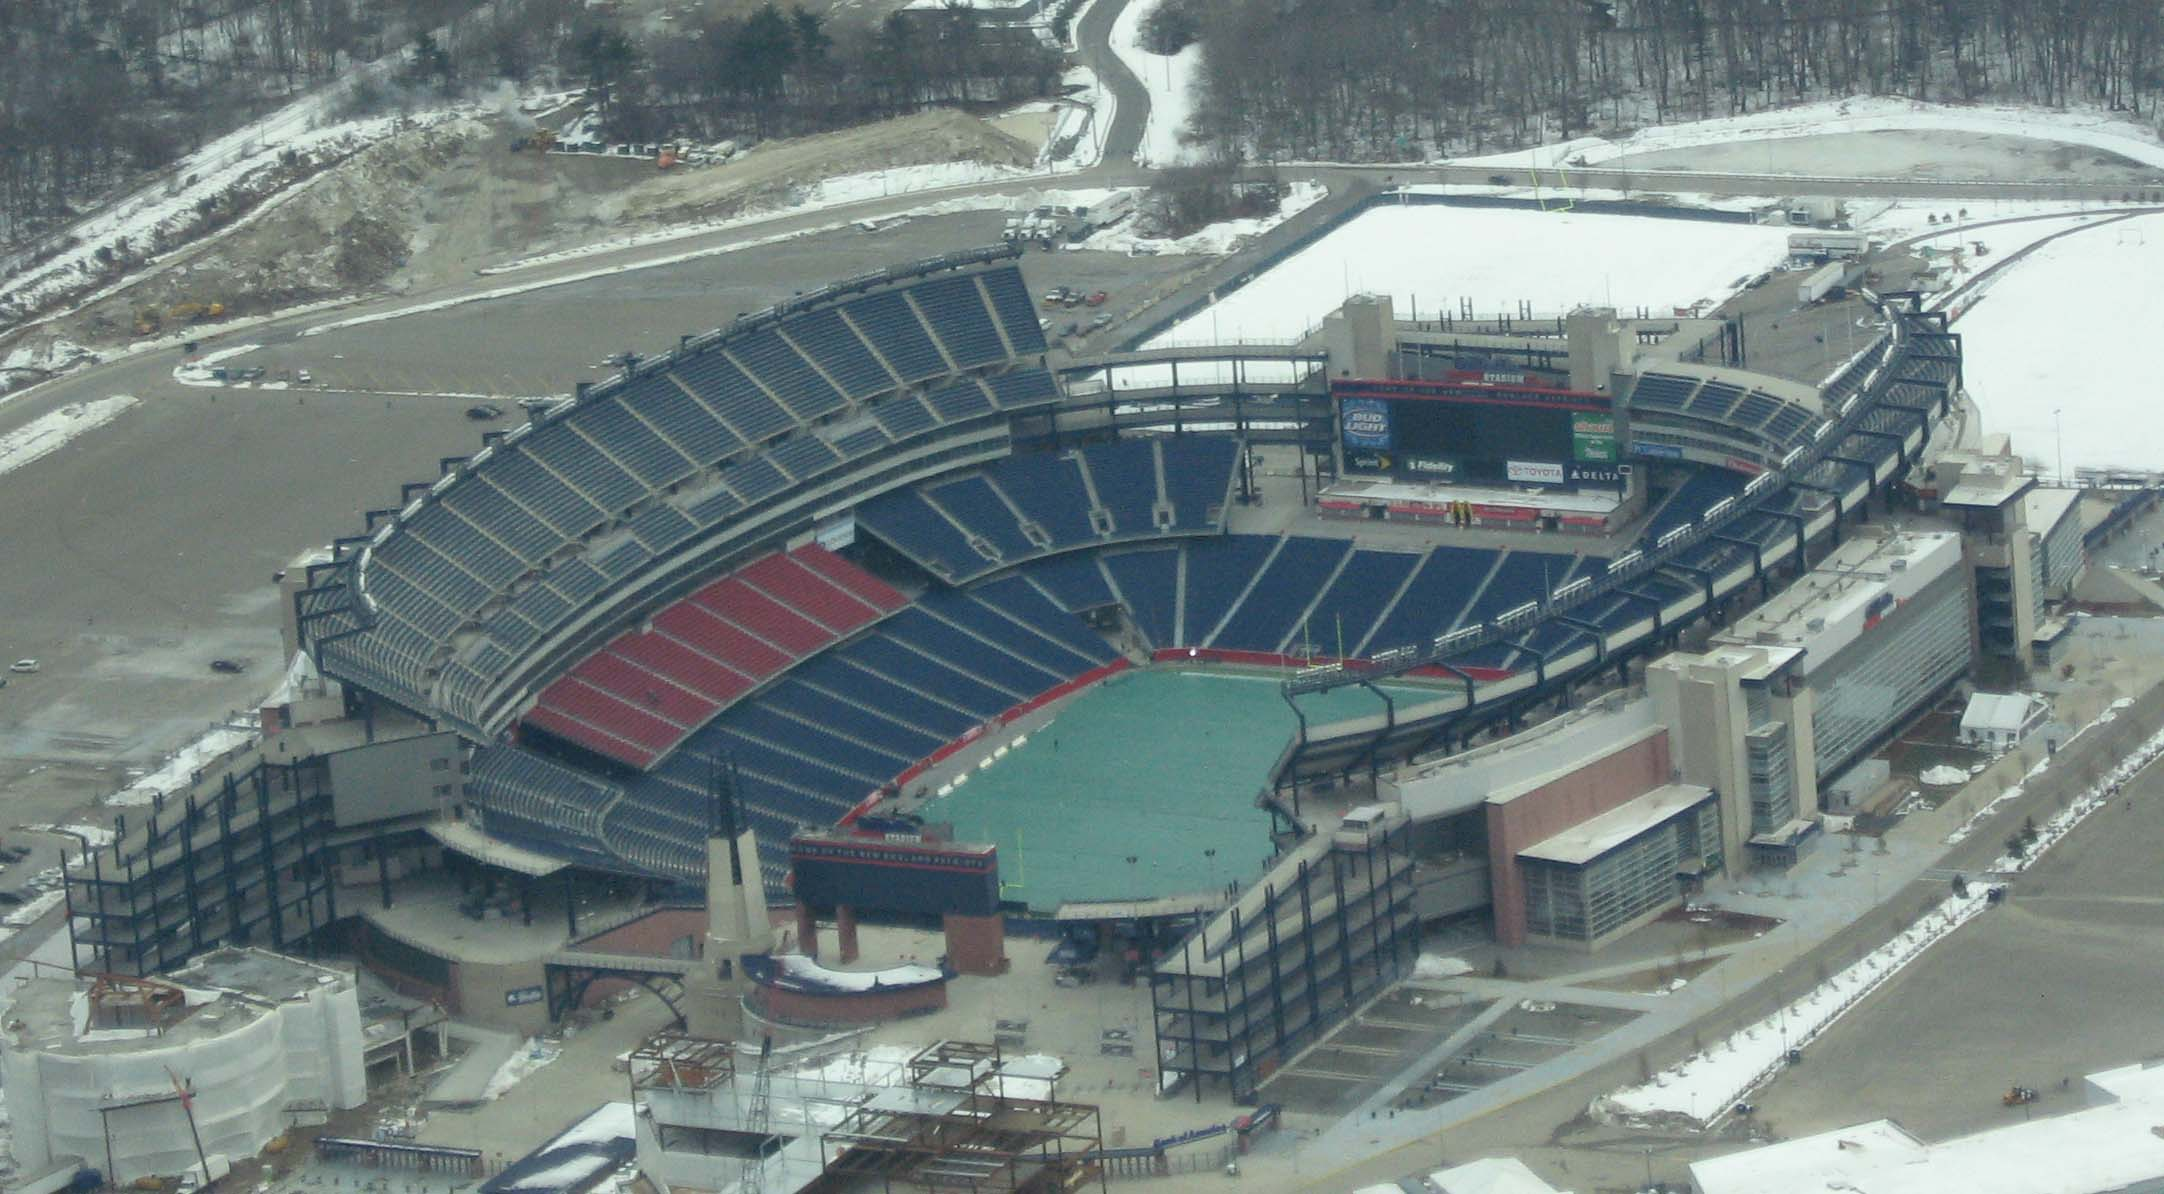 Gillette_stadium construction